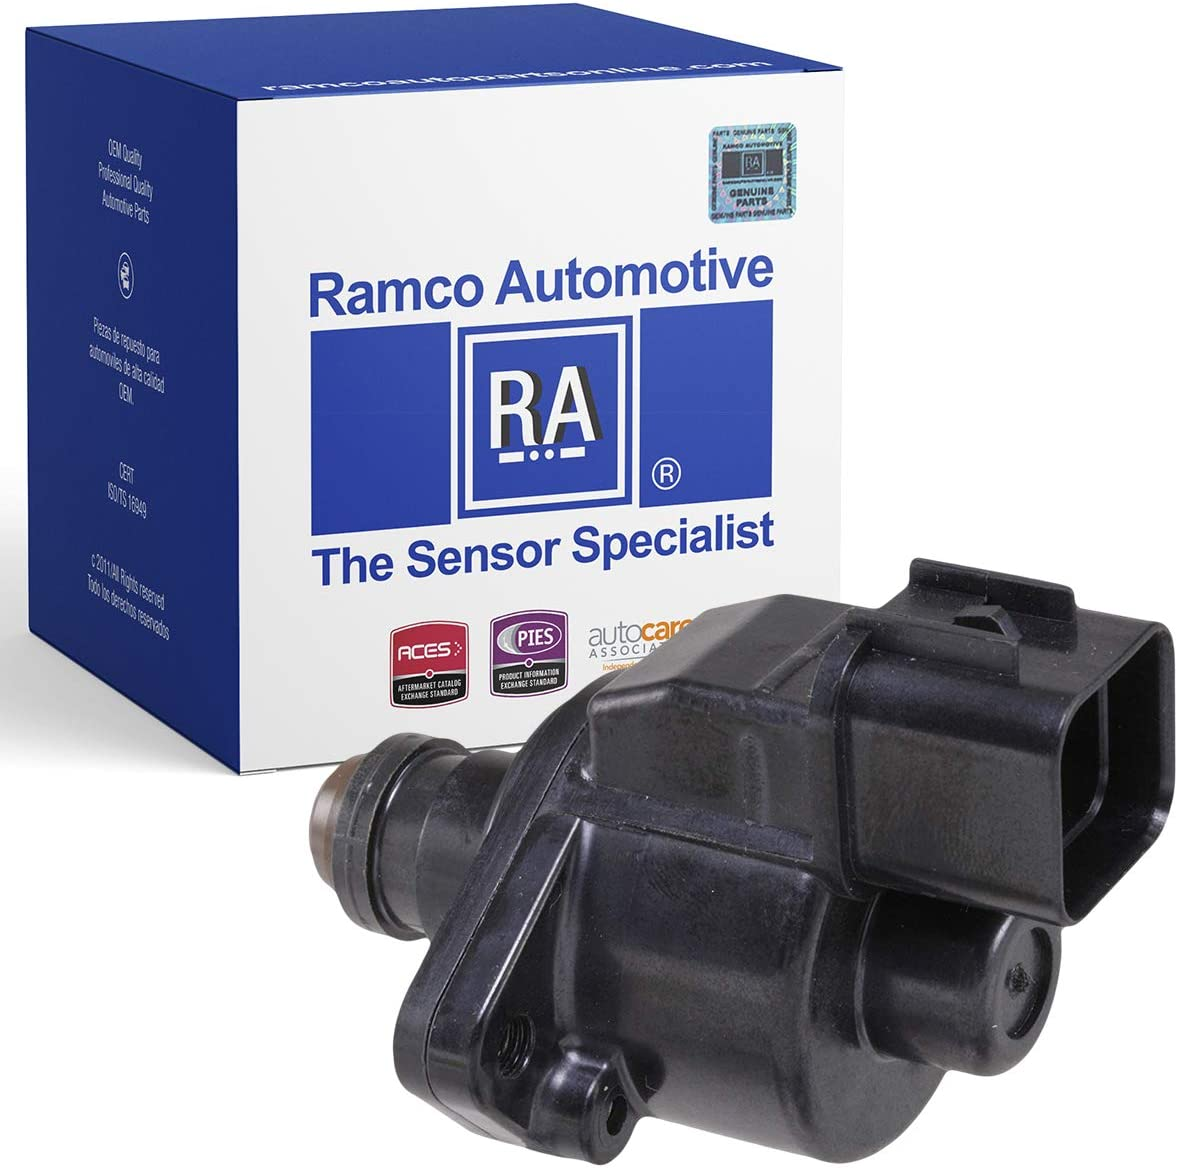 Compatible with Wells AC4081 Standard Motor Products AC510 Ramco Automotive RA-IAC1017 Fuel Injection Idle Air Control Valve